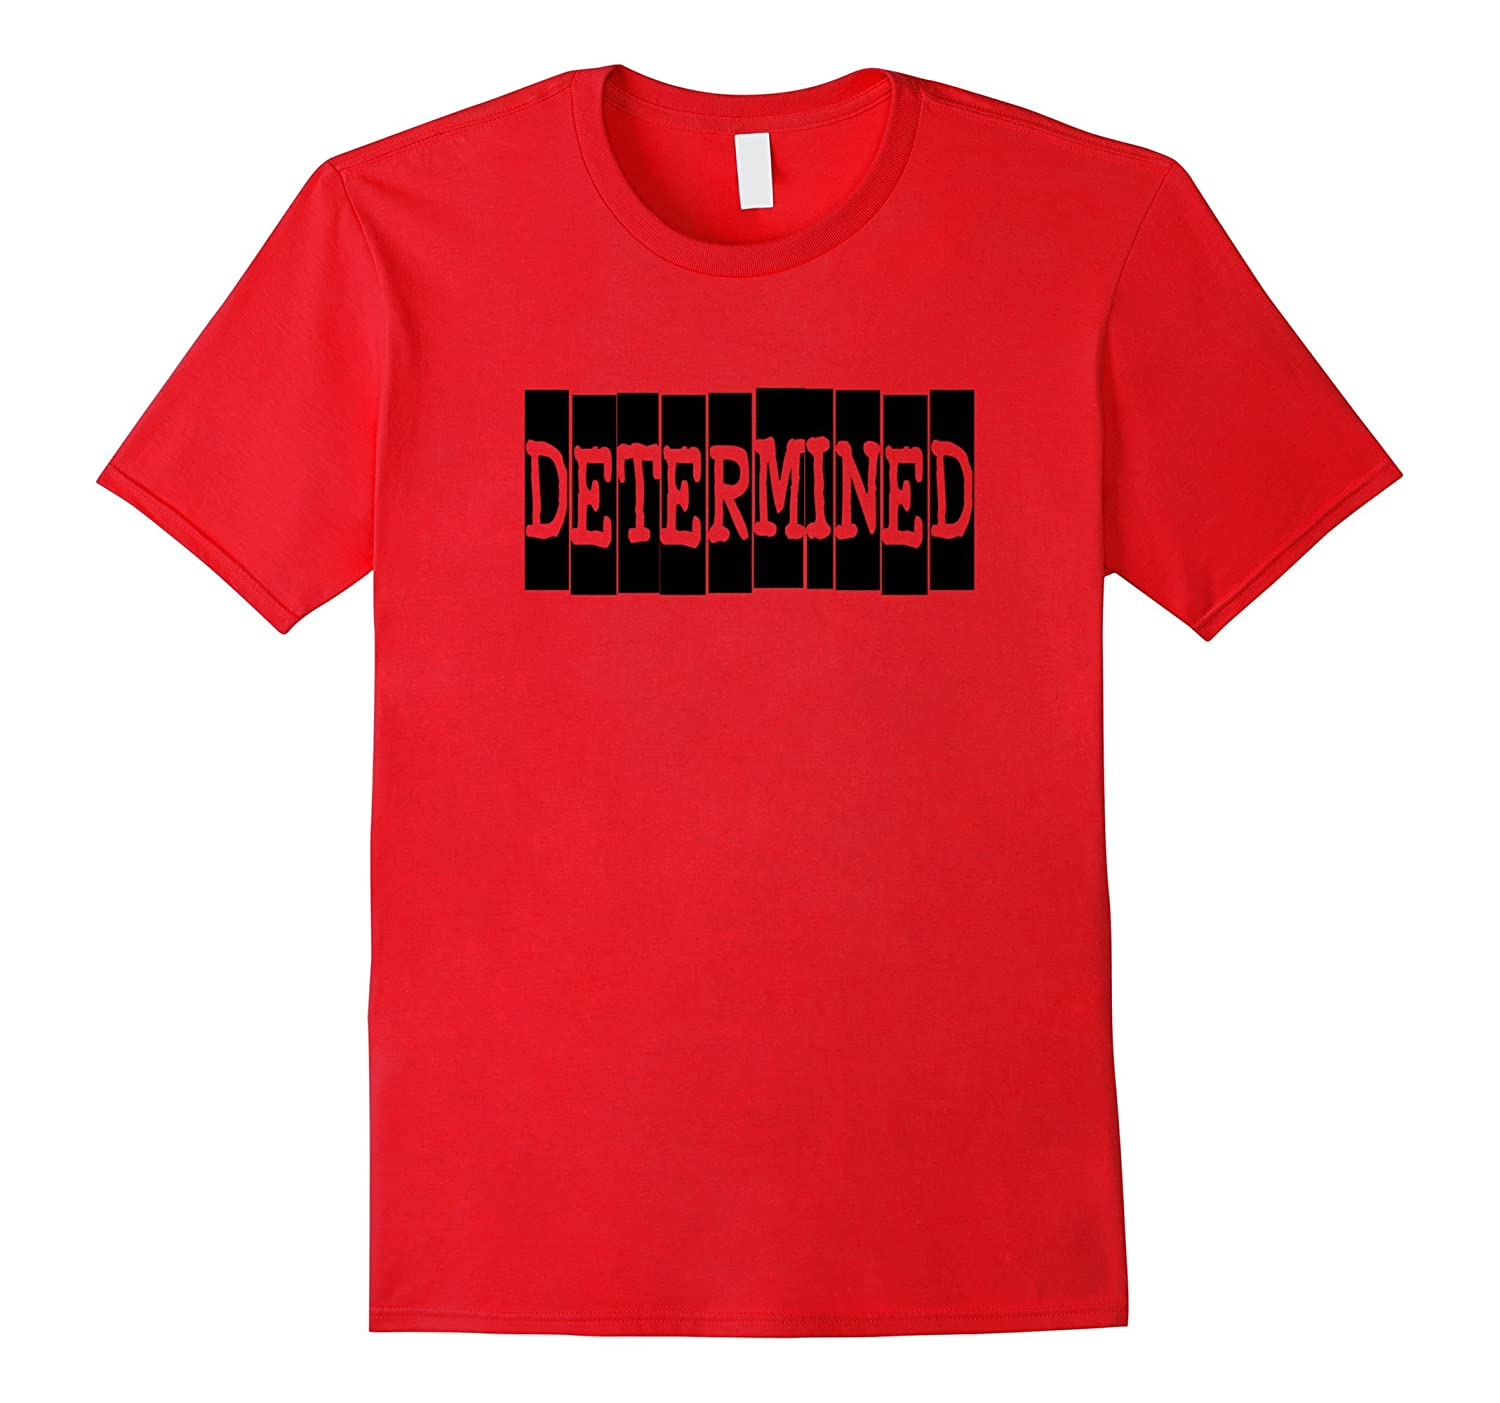 Determined Motivational workout or exercise T-shirt-Vaci